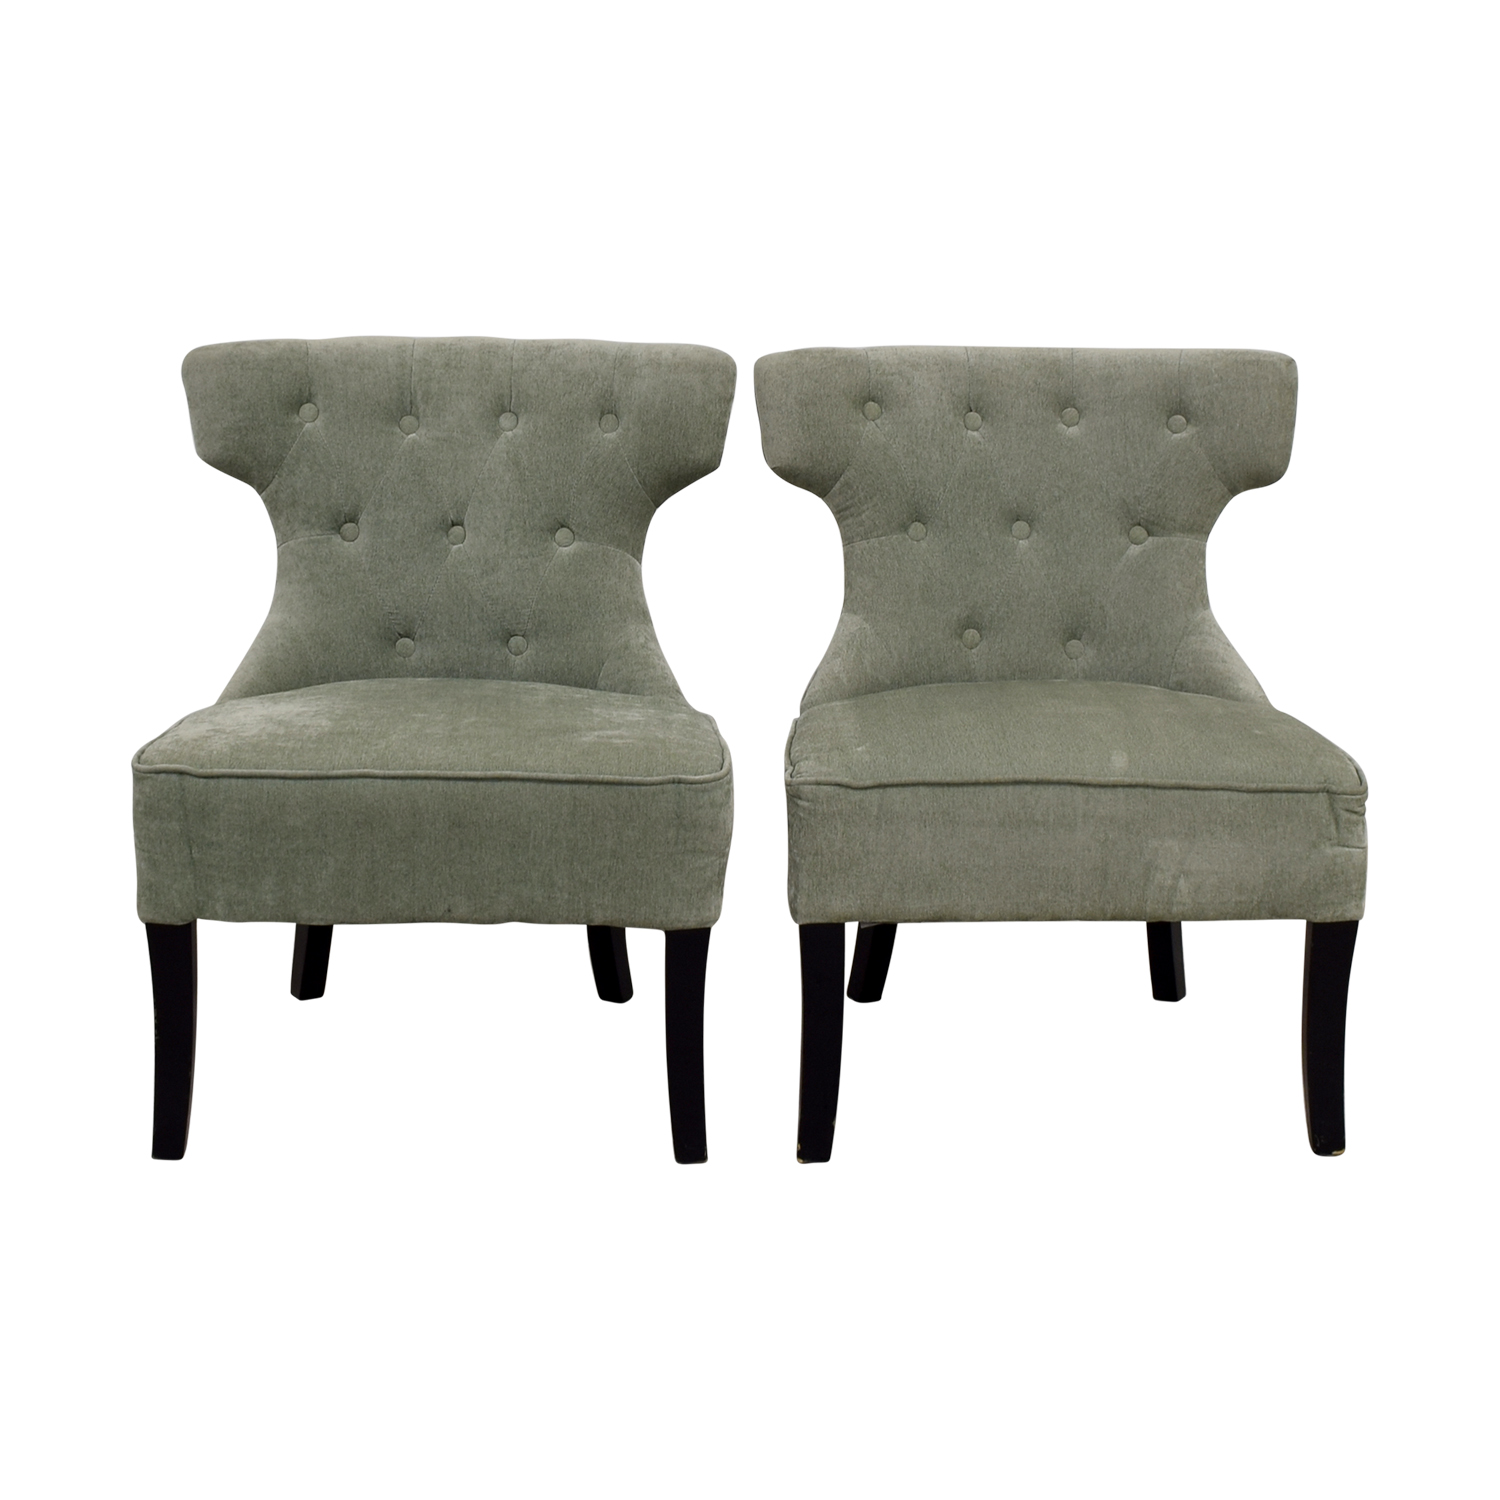 all modern ritz teal tufted accent chairs all modern .  off  all modern all modern ritz teal tufted accent chairs